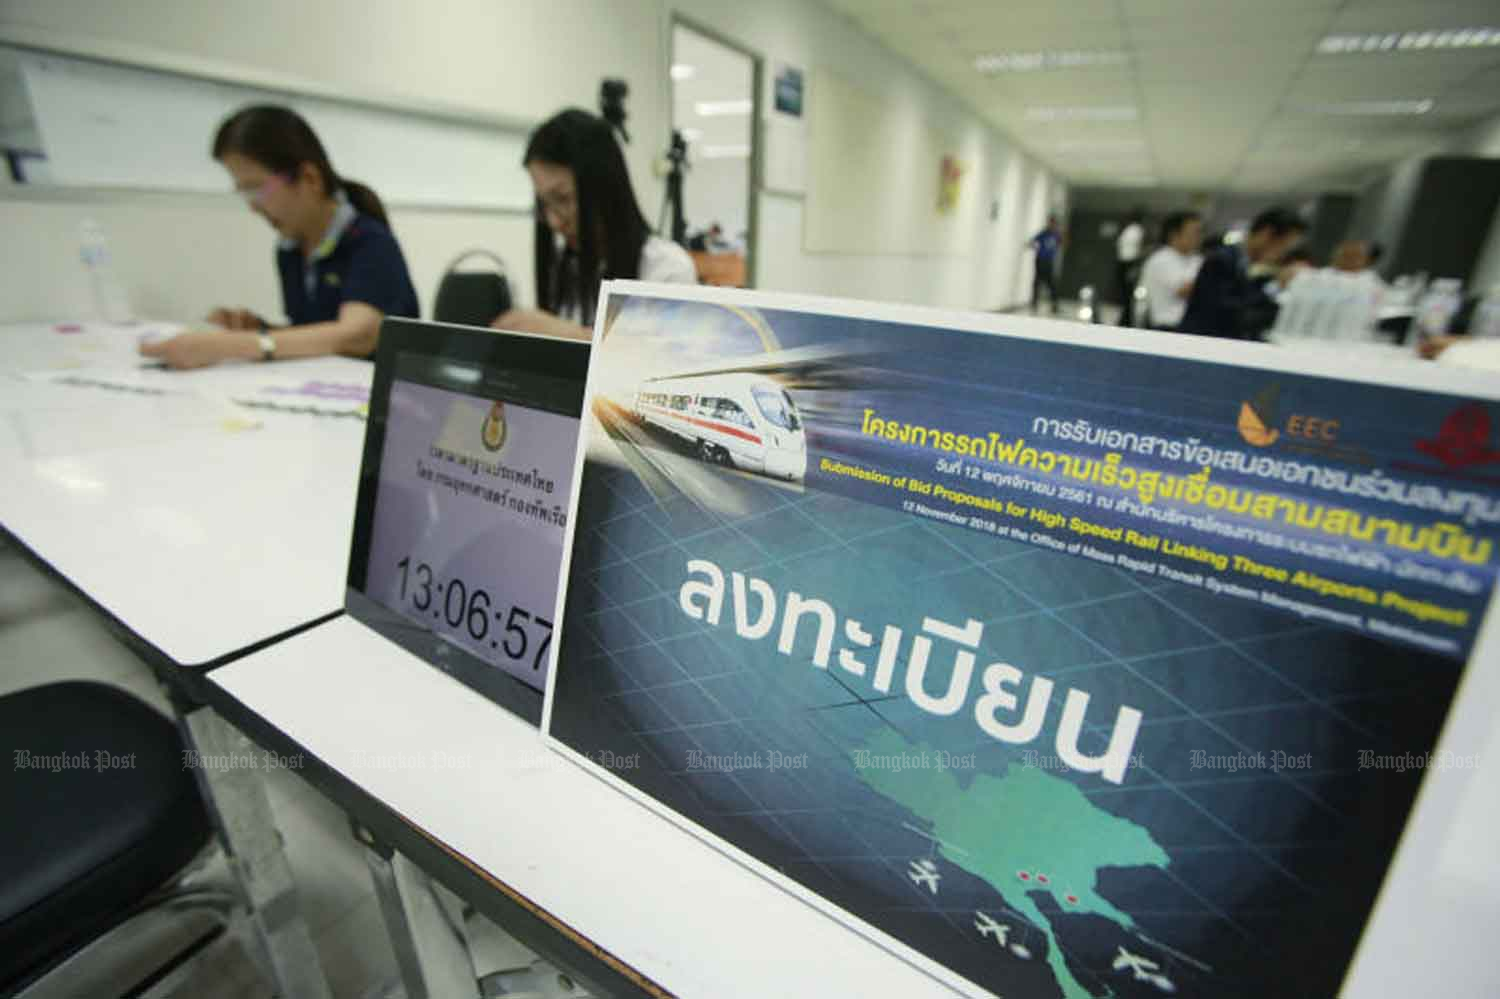 The venue of the bidding contest for the construction of the high-speed railway to link three main airports, at Airport Rail Link's office in Bangkok last November. (File photo)